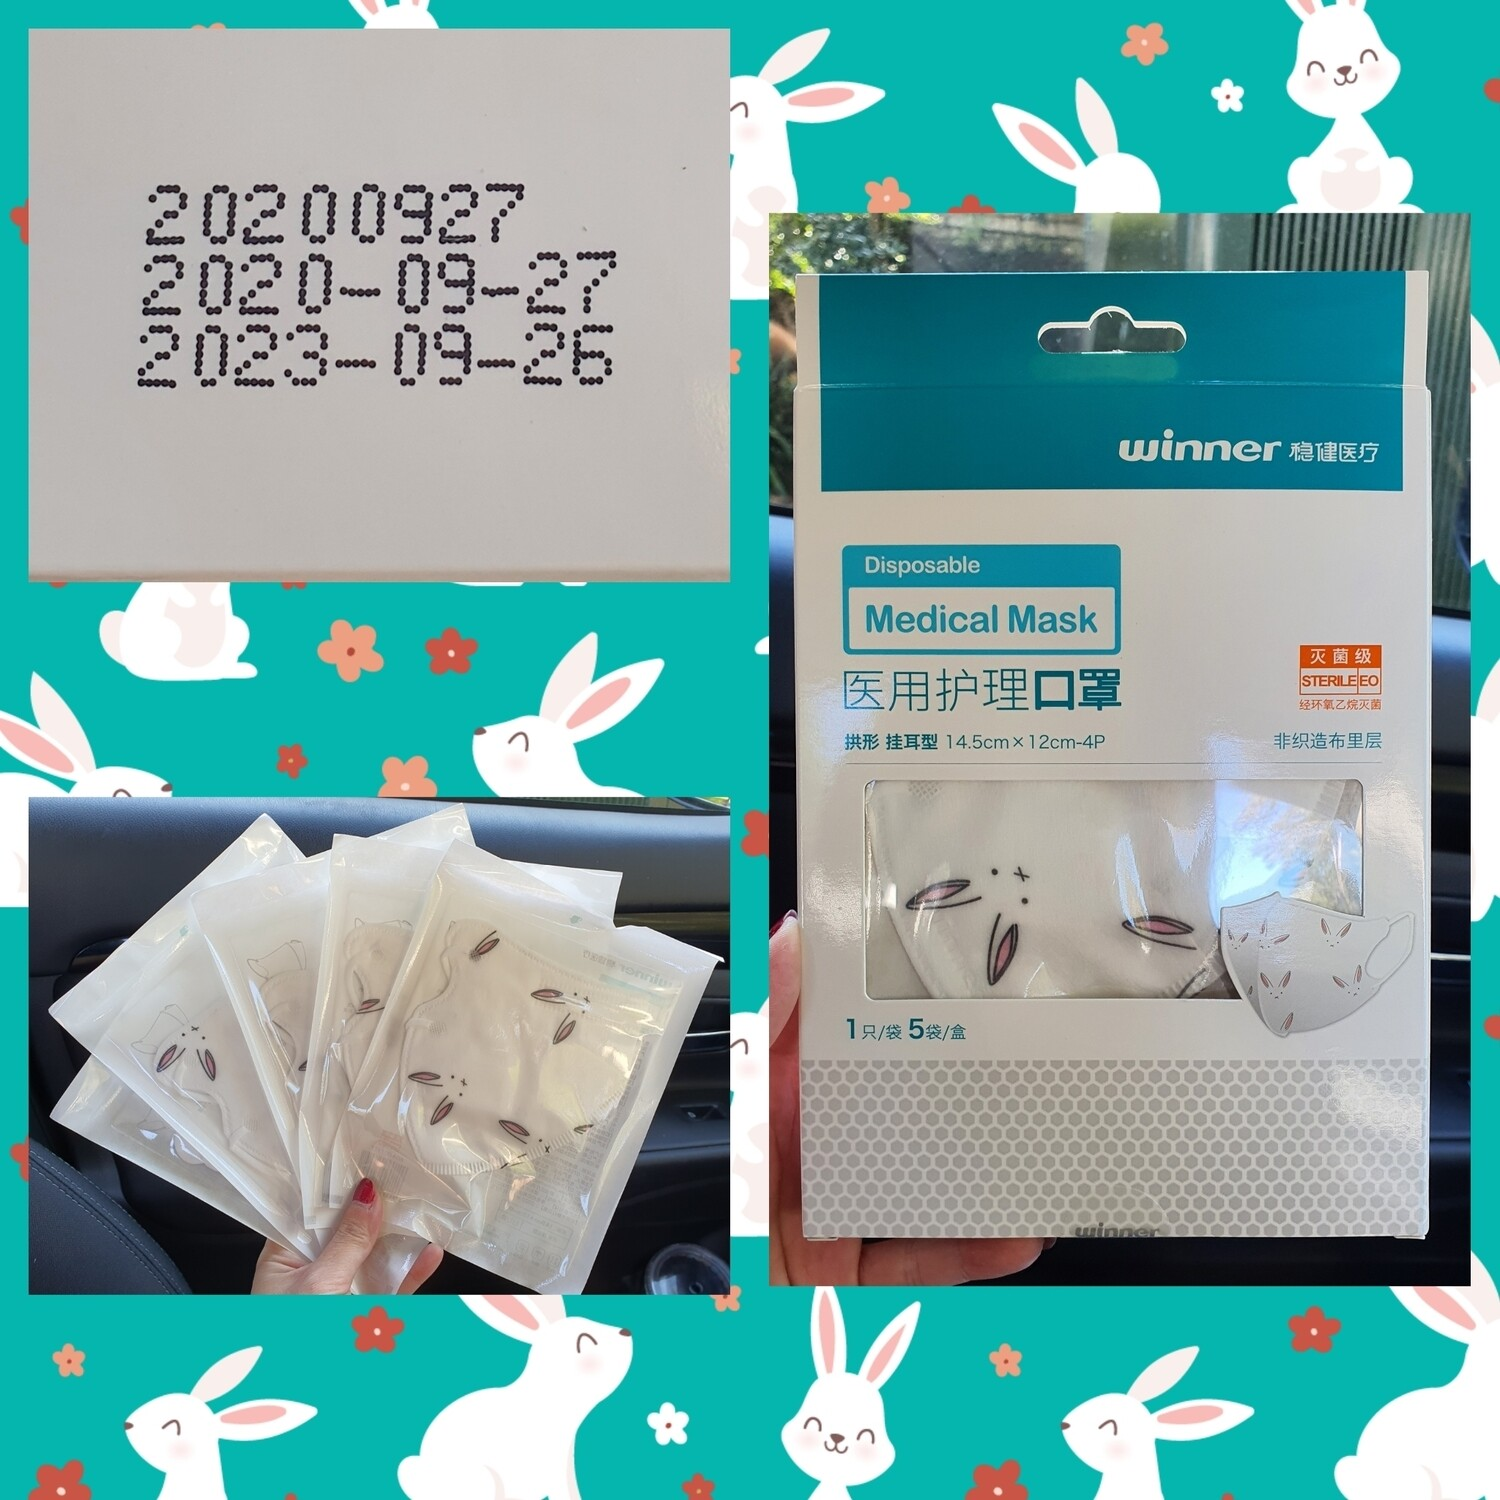 3D Bunny Design Disposable Mask (Adult size) indivially packed Box of 5